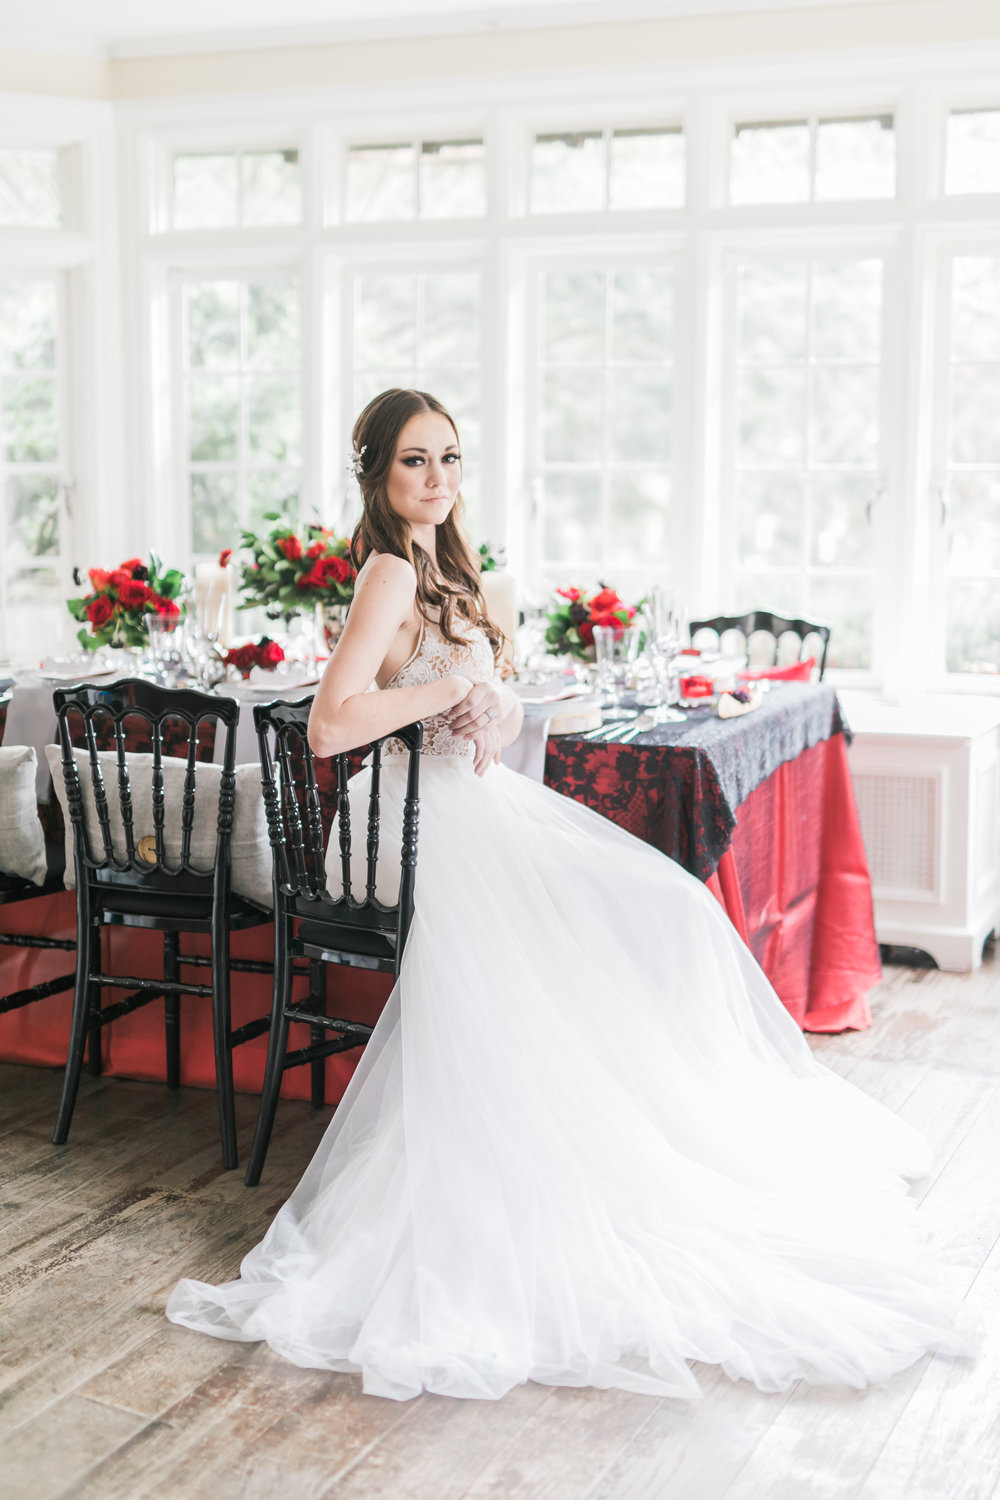 Canadian_black_red_silver_wedding_editorial_shoot-152.jpg